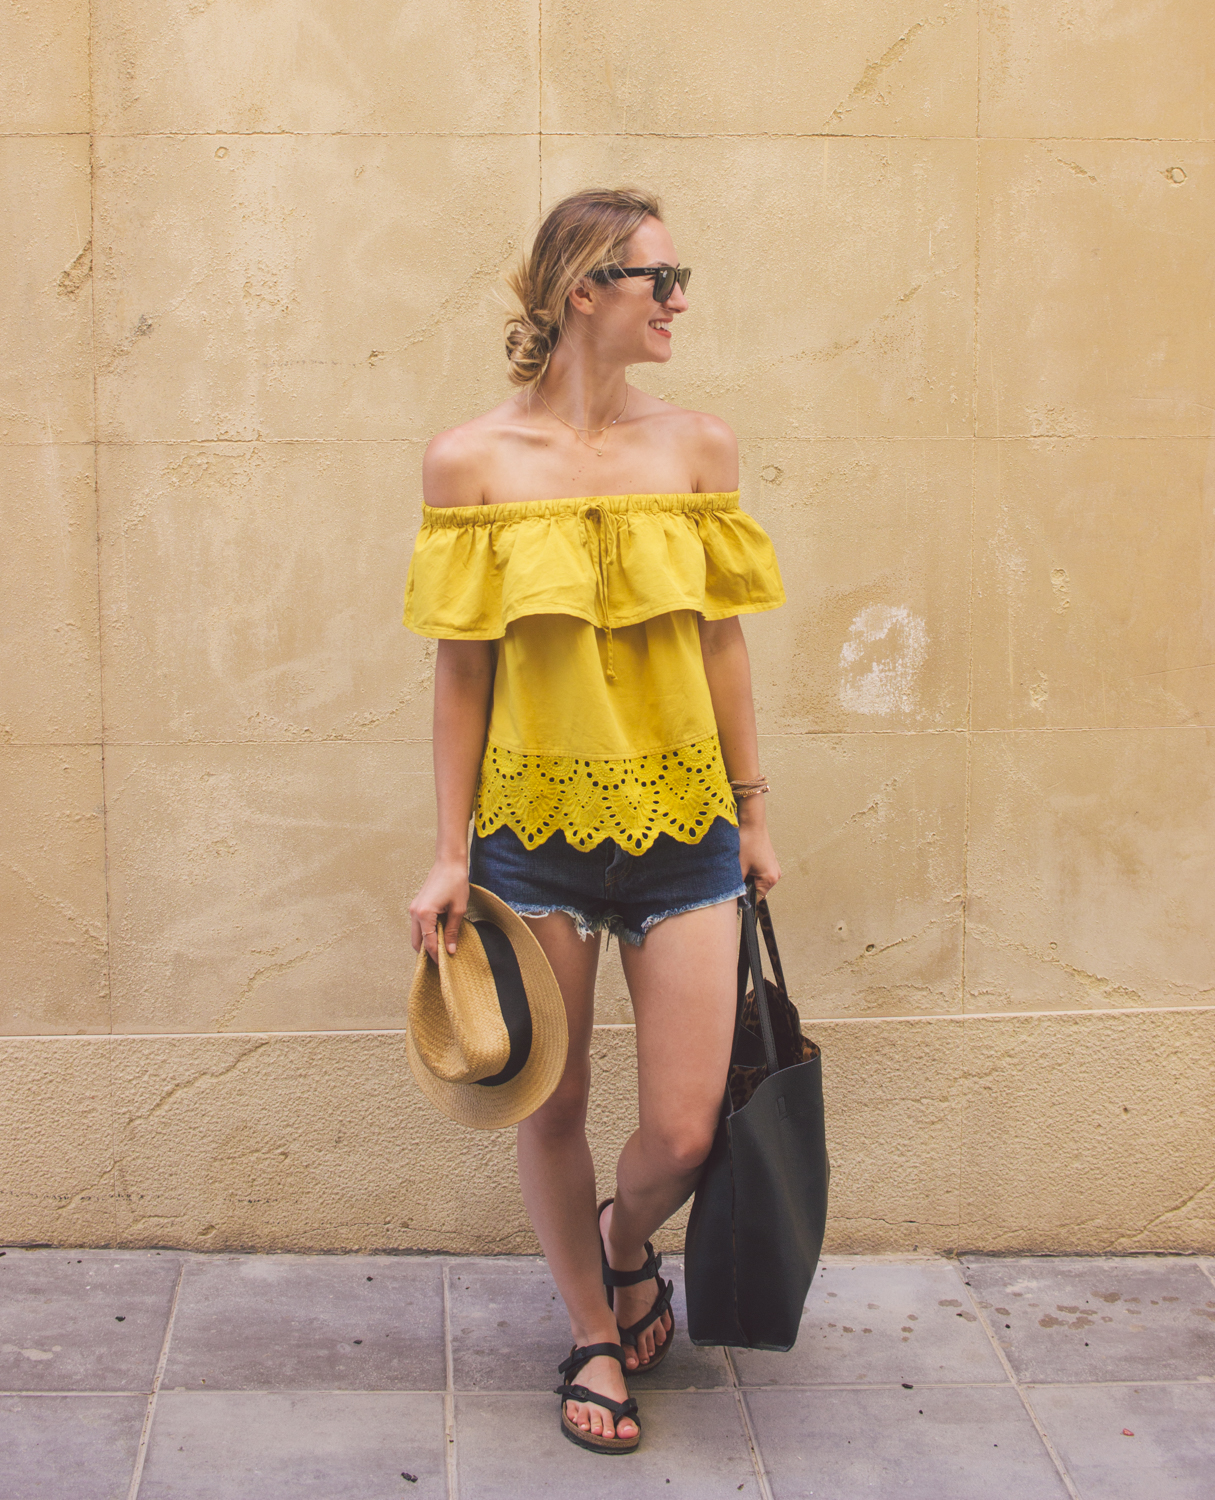 livvyland-blog-olivia-watson-fashion-blogger-austin-texas-cartagena-spain-princess-cruises-mediterranean-madewell-off-shoulder-top-13